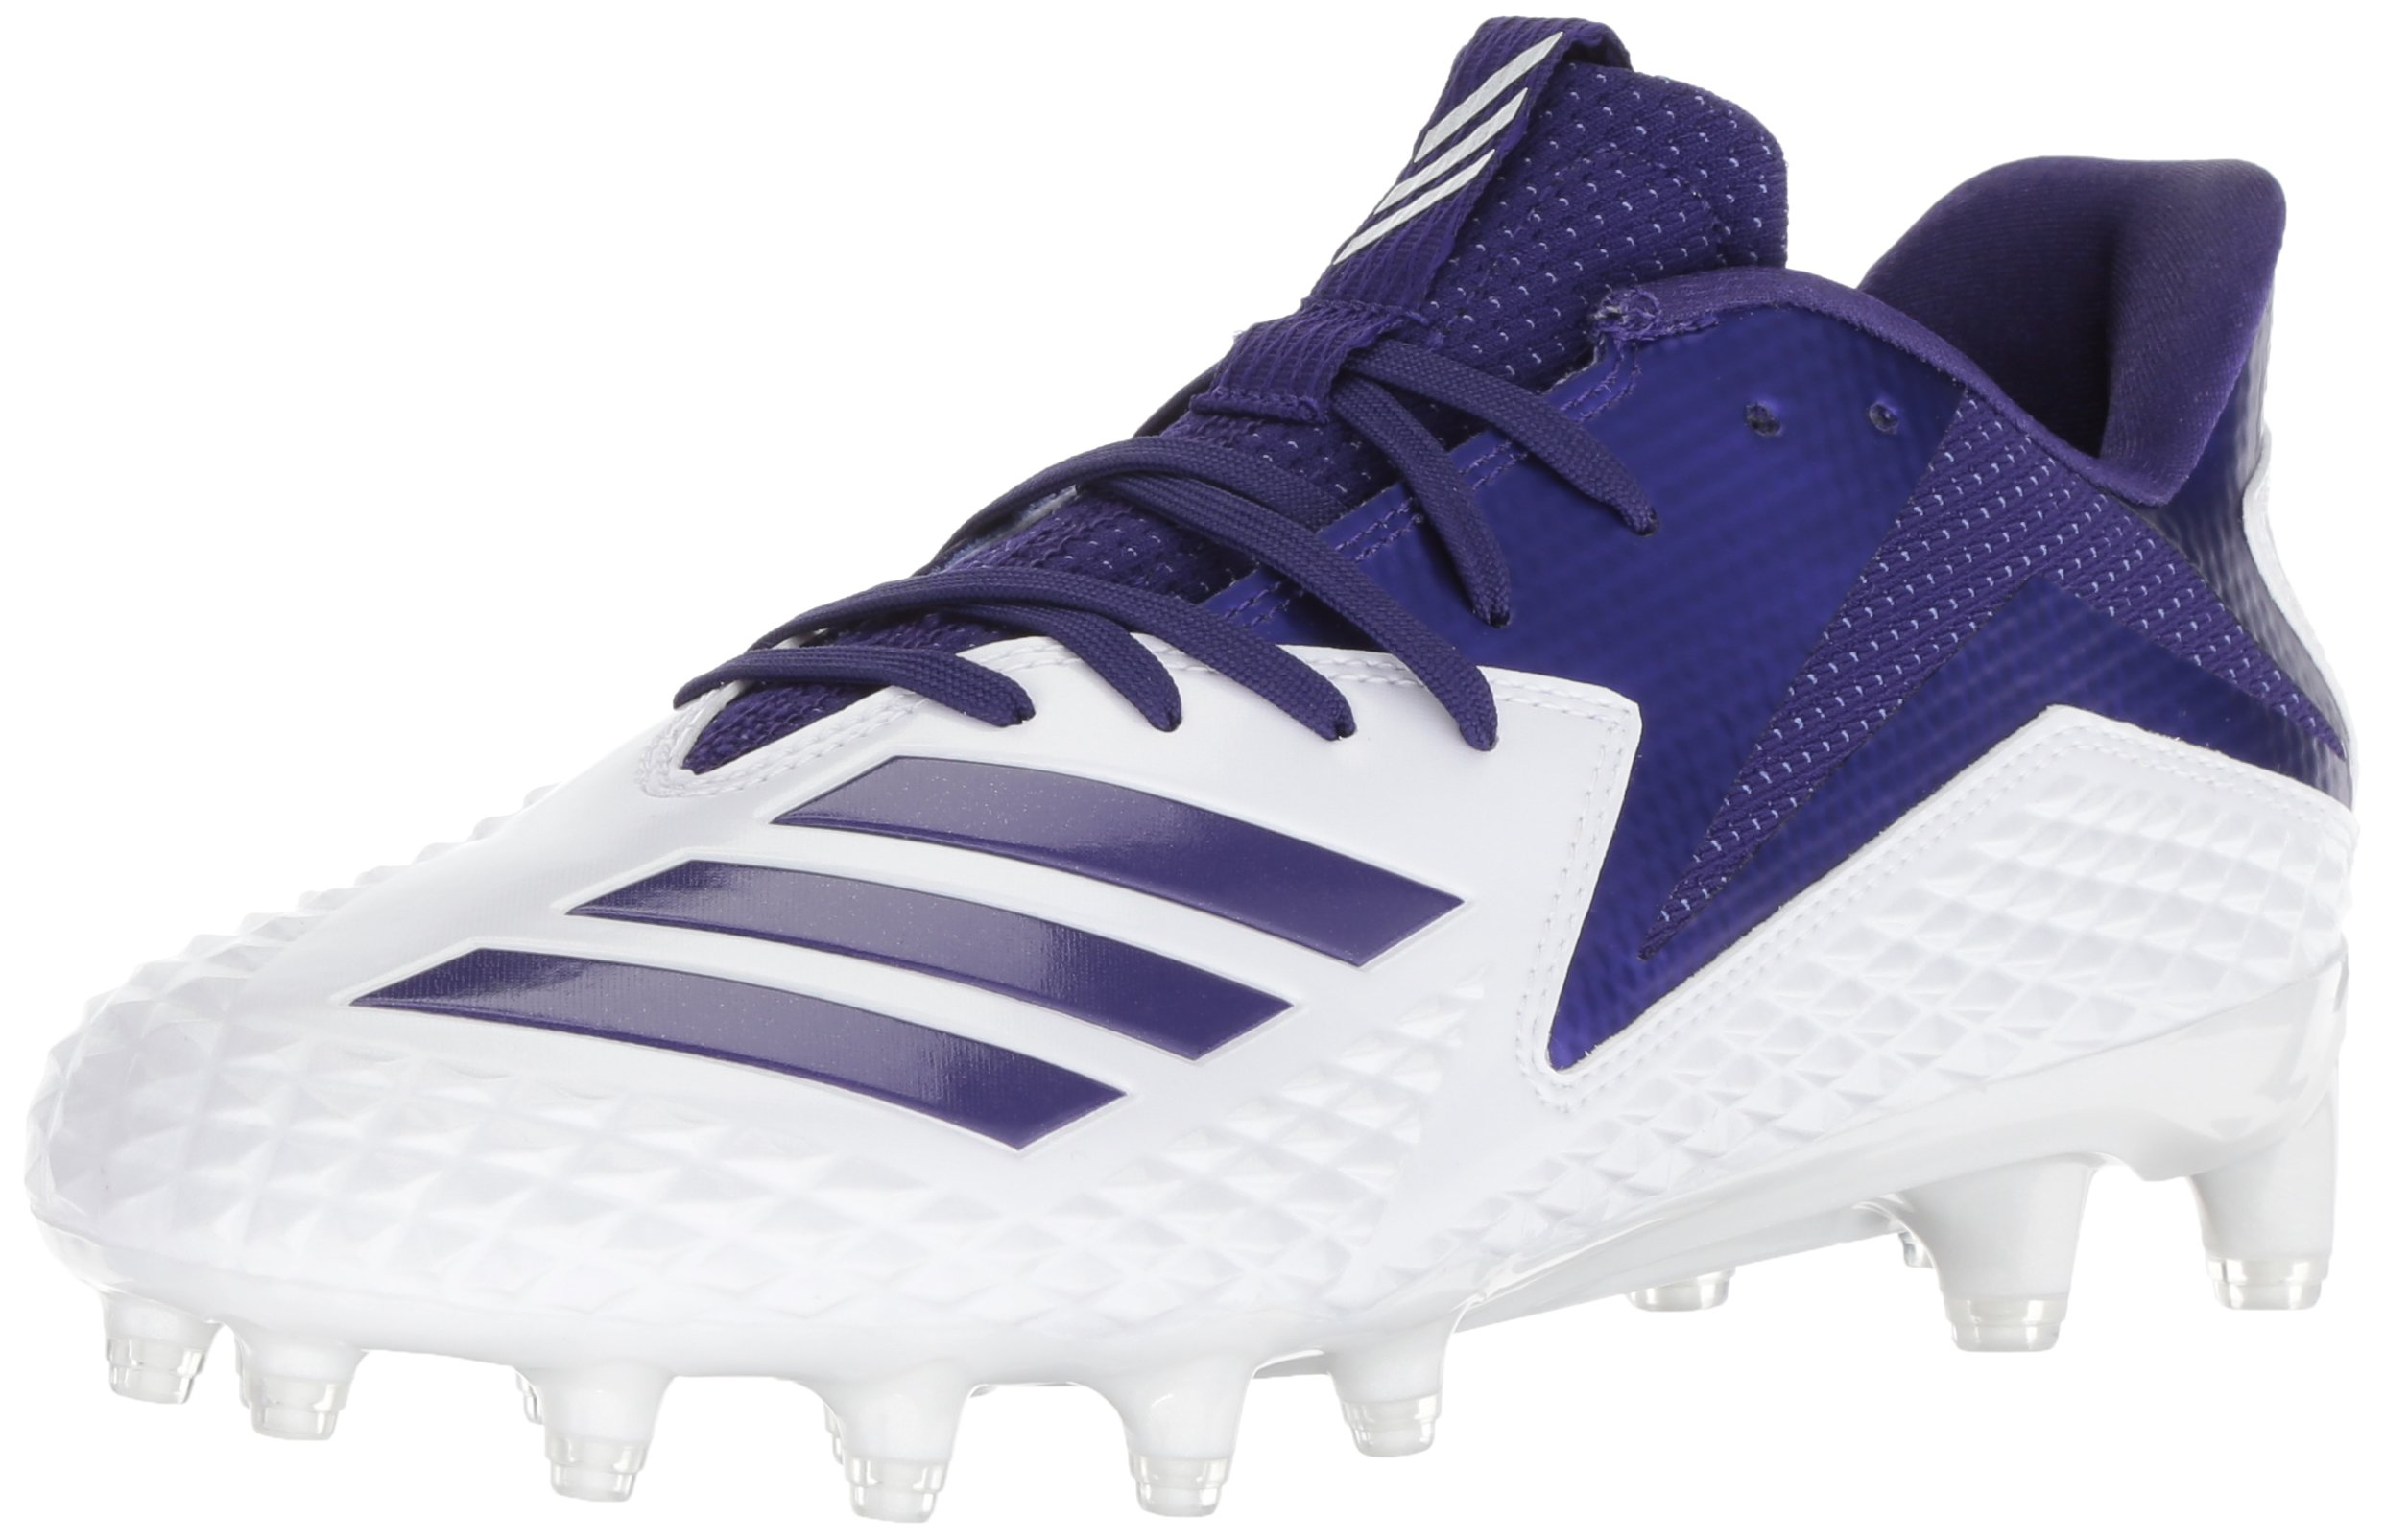 adidas Men's Freak X Carbon Mid Football Shoe, White/Collegiate Purple/Collegiate Purple, 11.5 M US by adidas